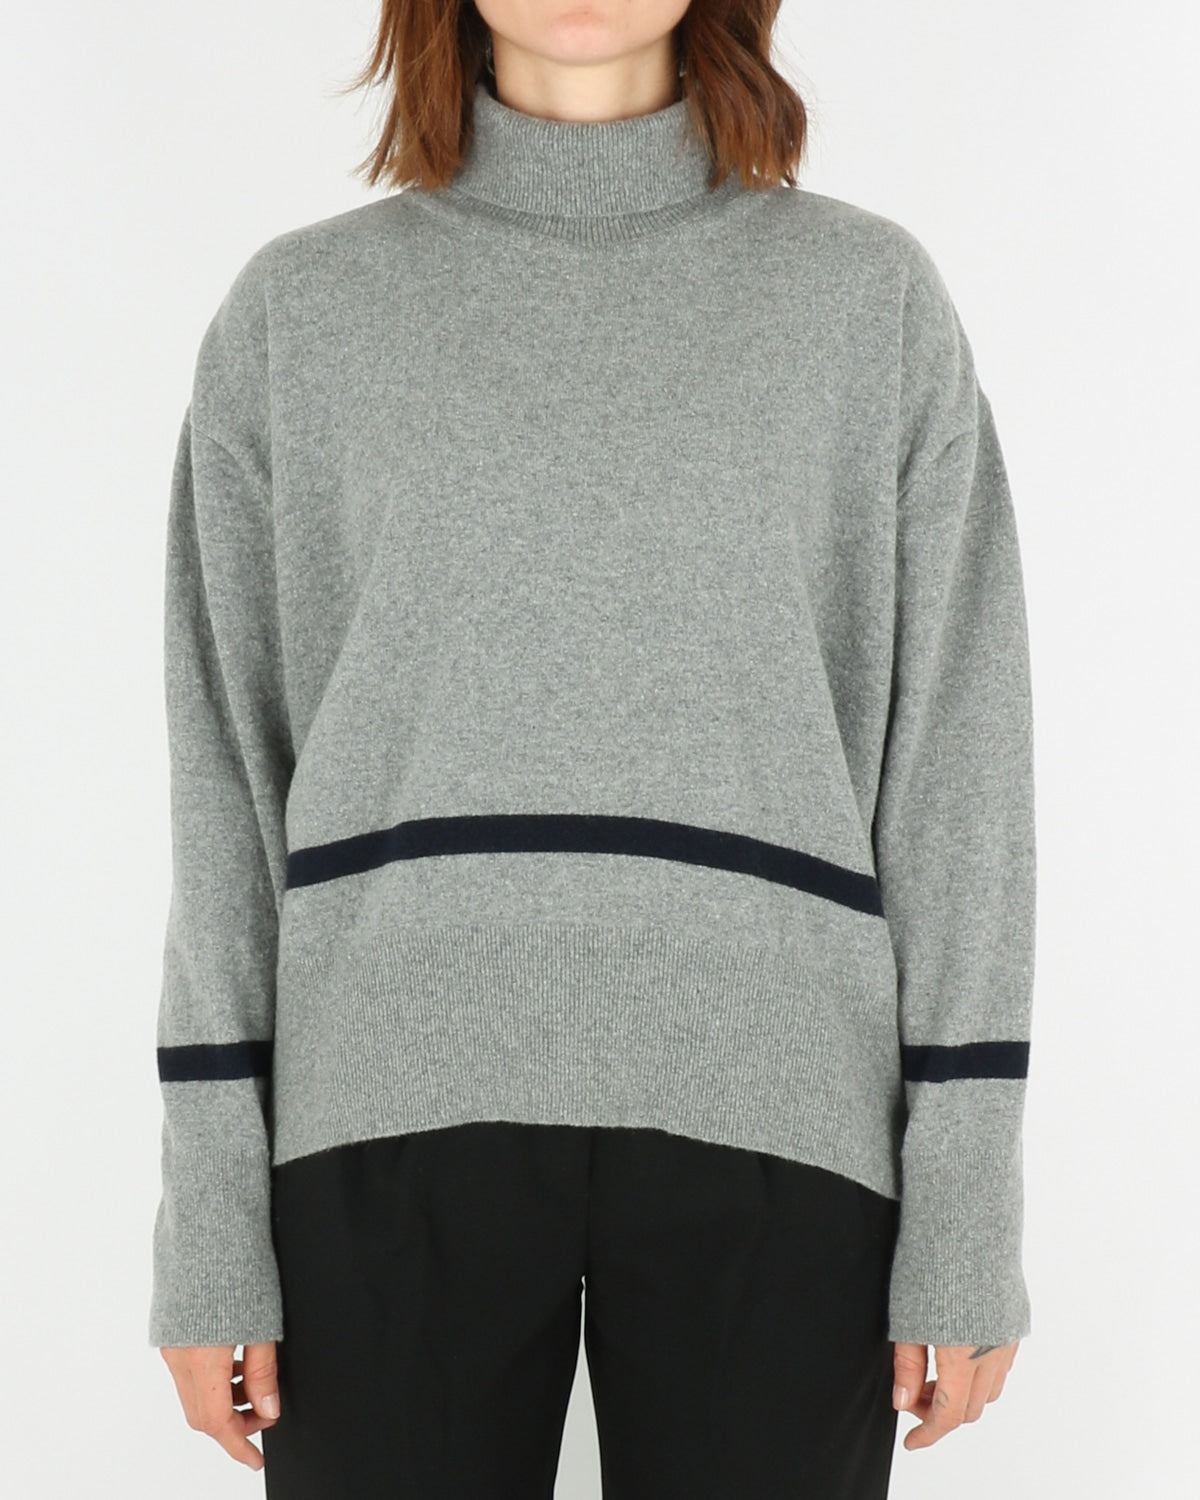 libertine libertine_husky knit_grey melange dark navy_1_4